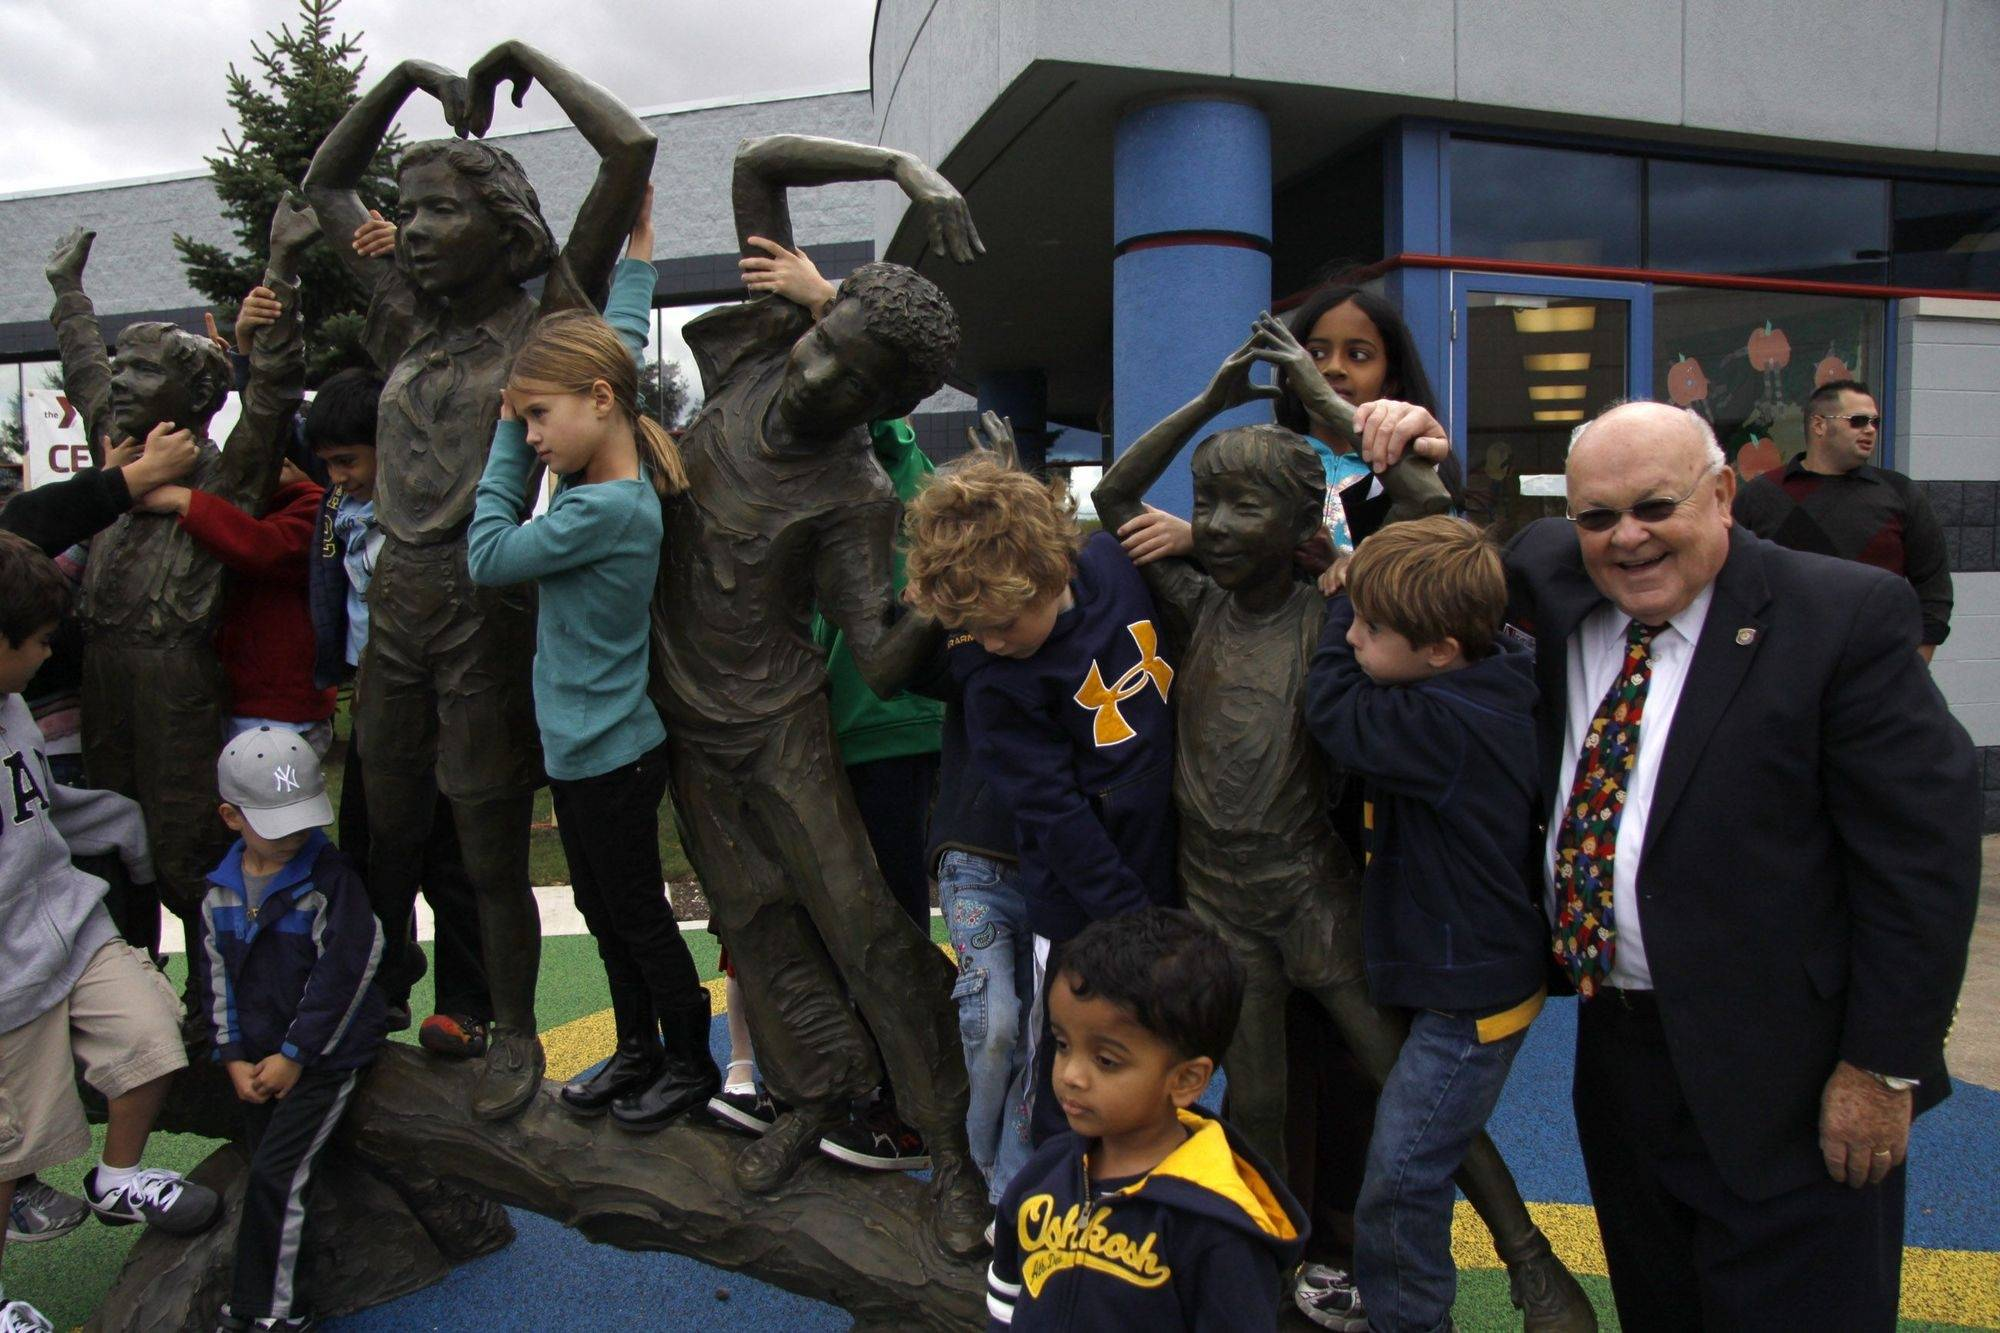 'Y.M.C.A.' sculpture unveiled at Naperville's Fry Family YMCA